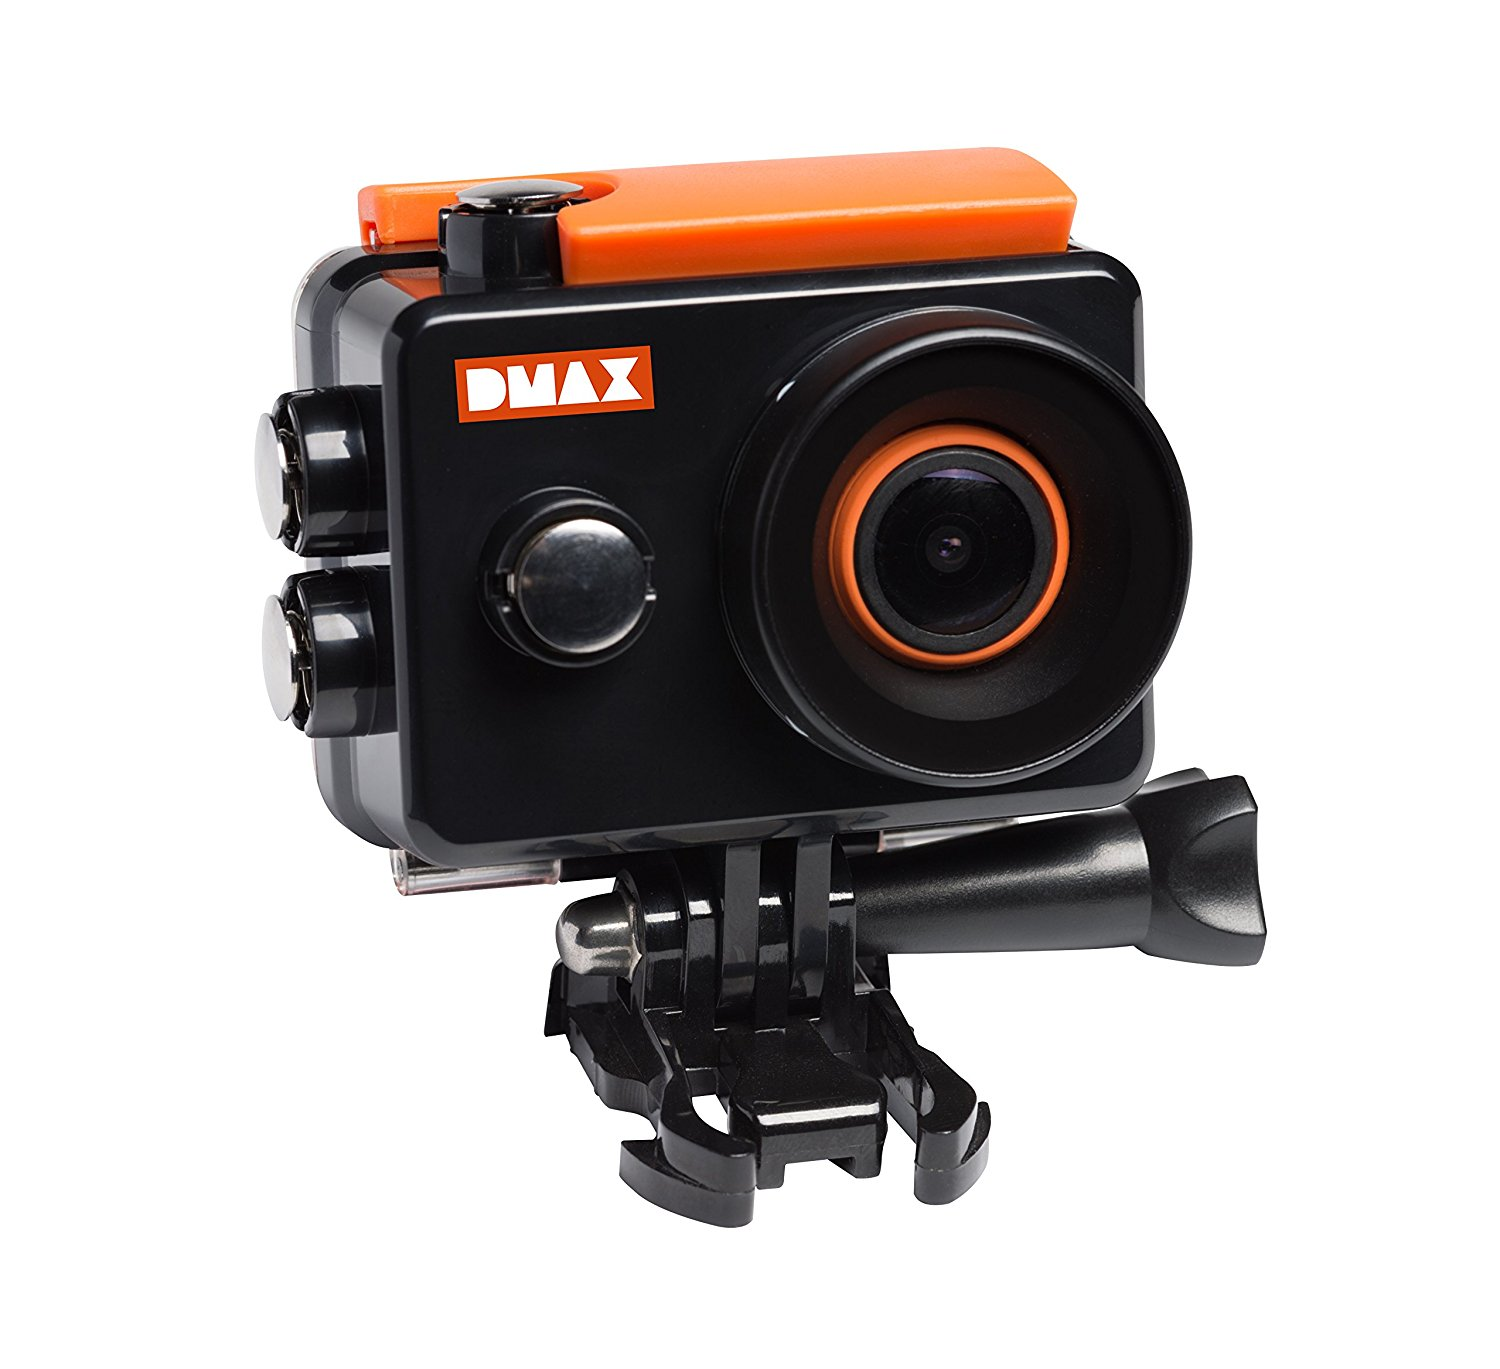 DMAX ActionCam amazon